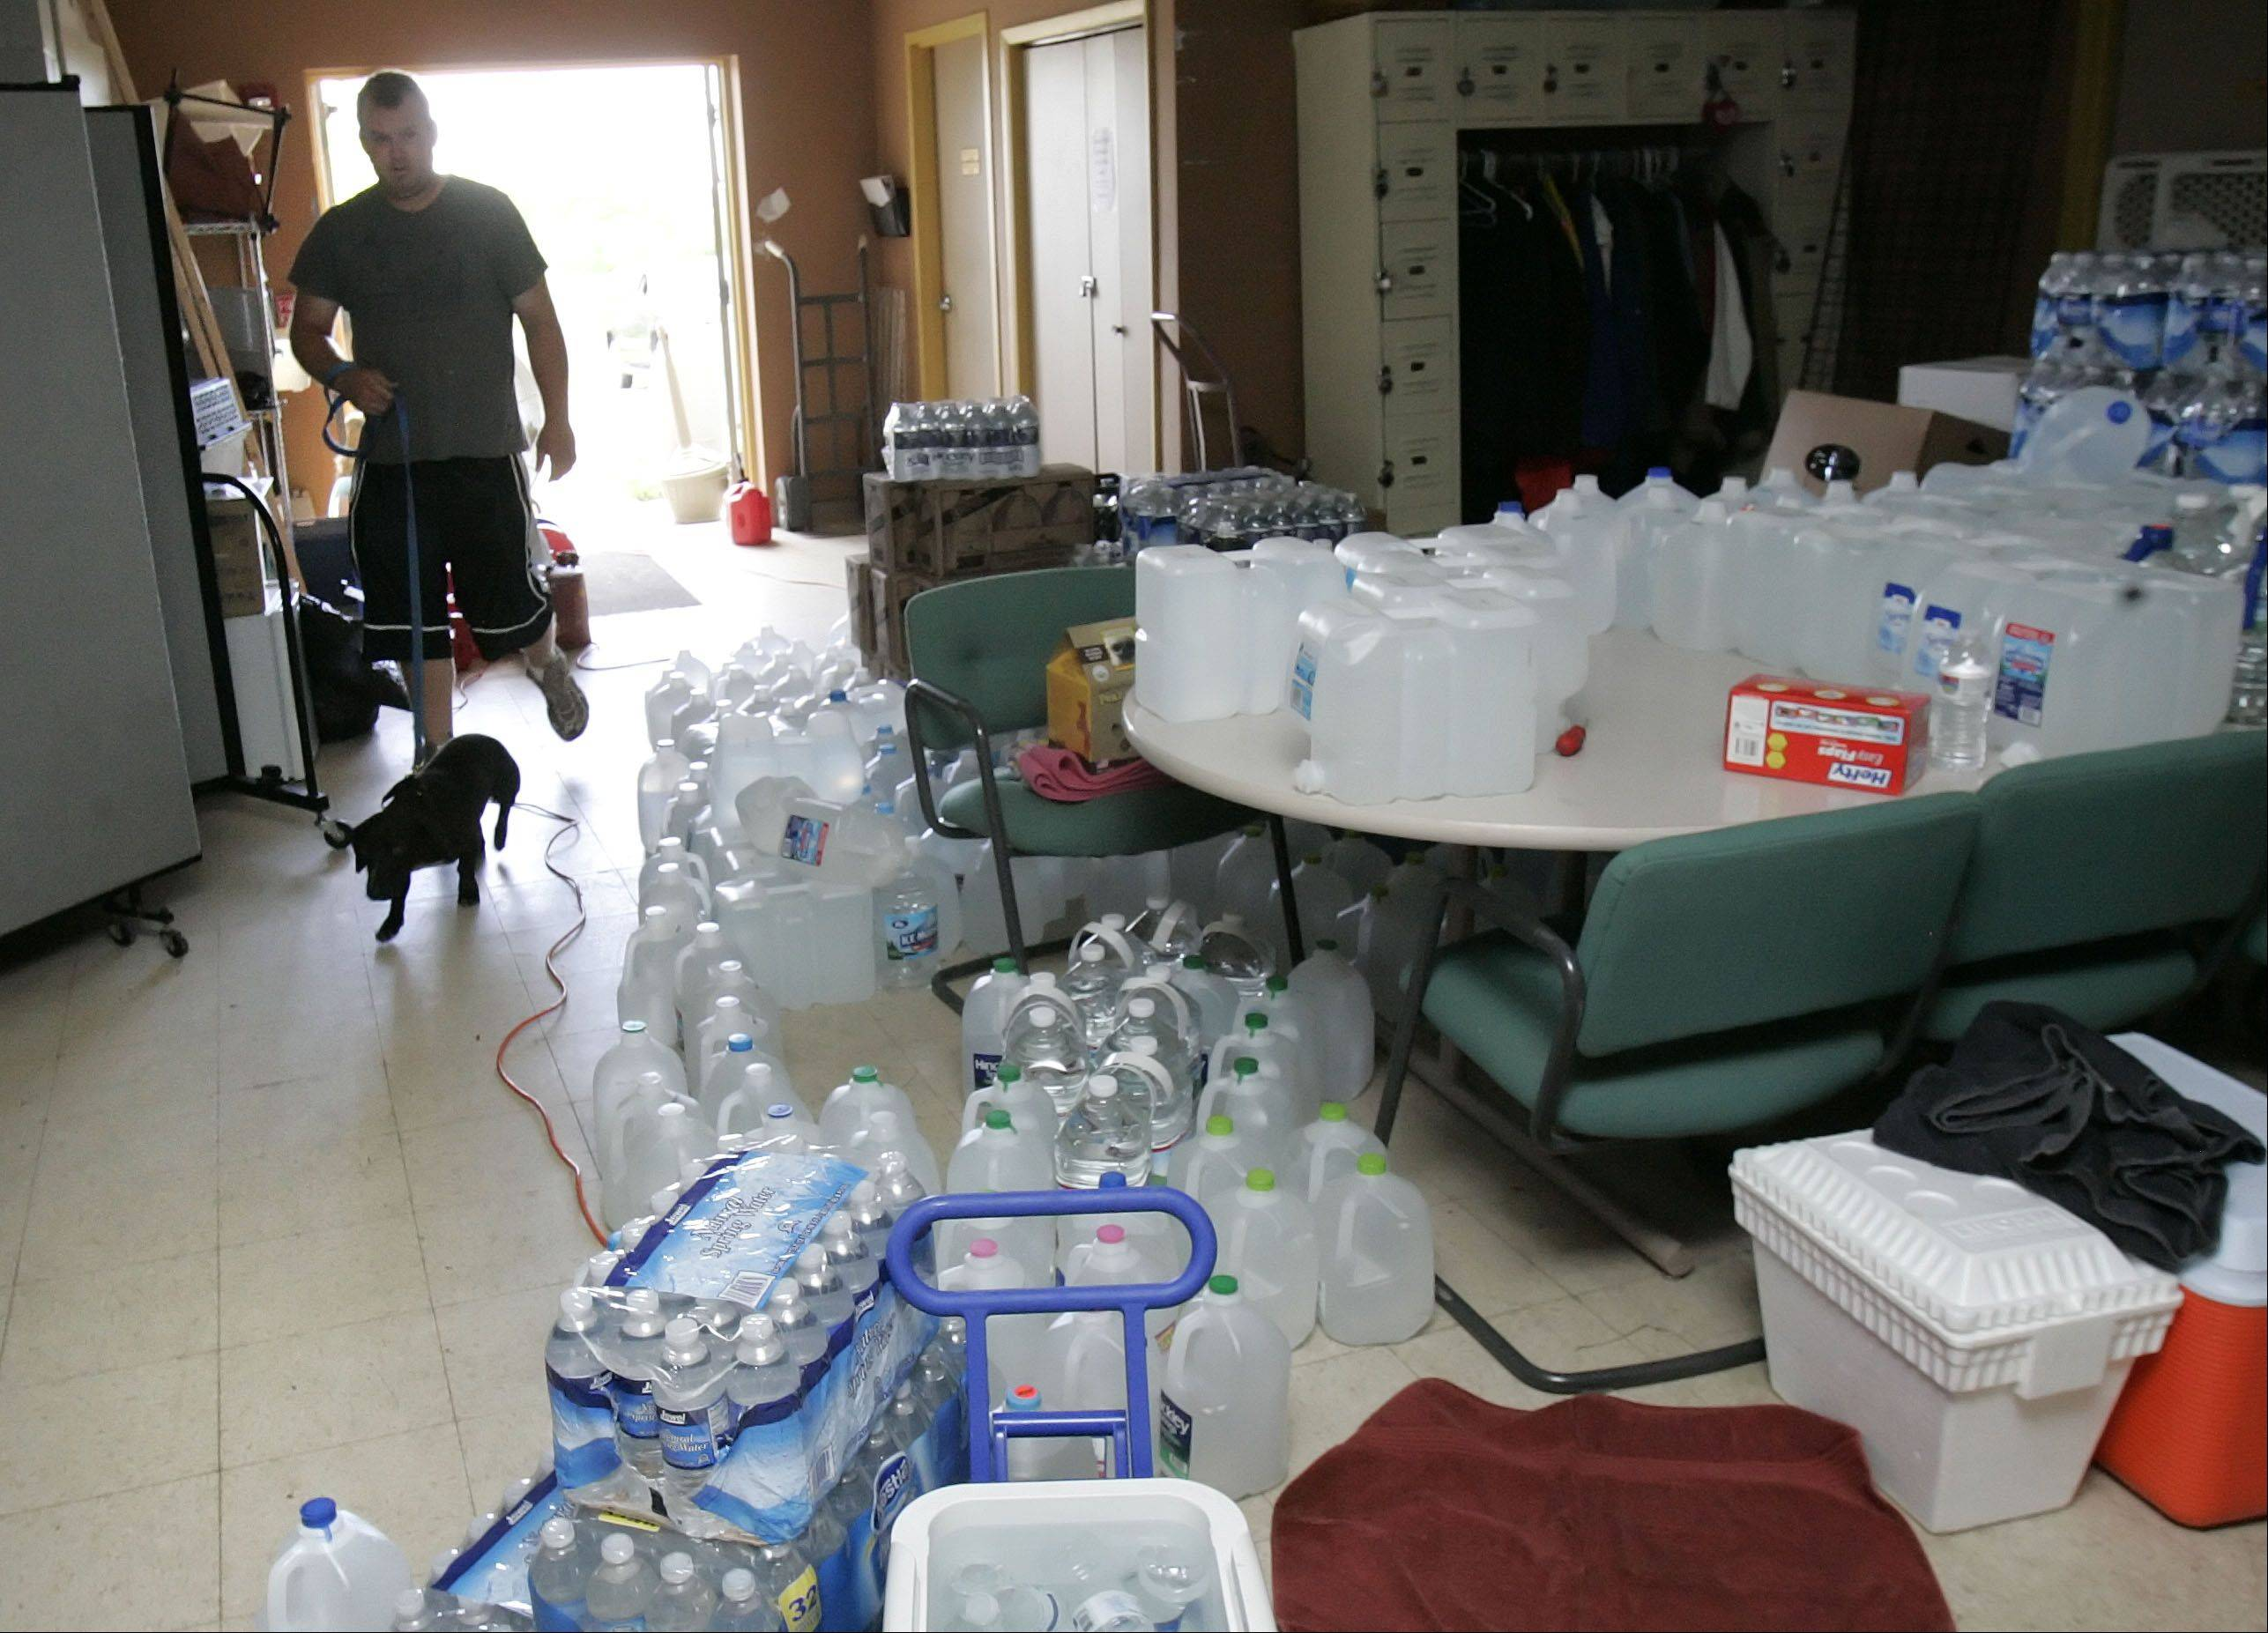 Grayslake animal shelter carries on without power